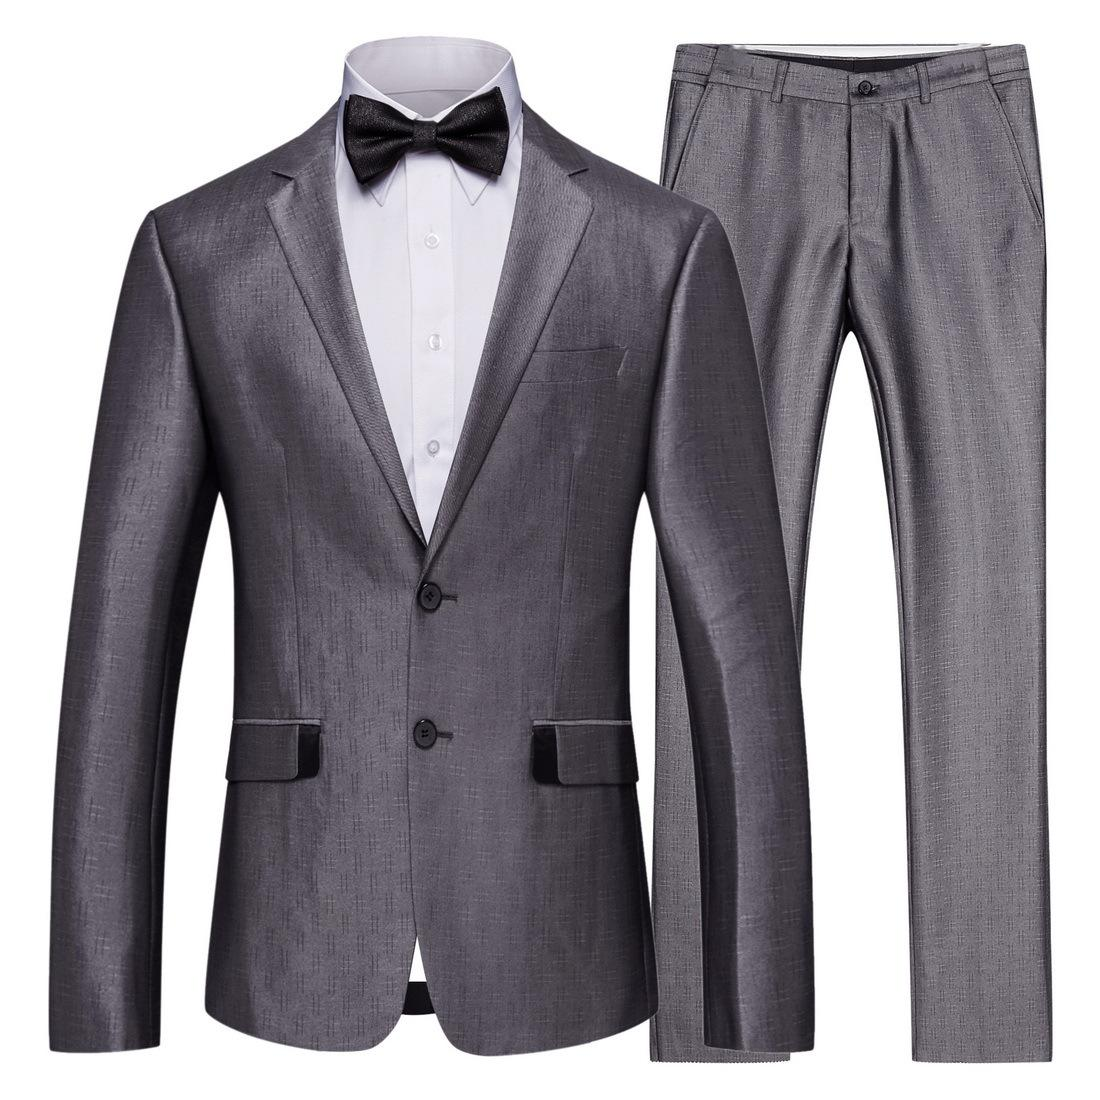 b9a5c284 2019 Mens Suits Regular Slim Fit Regular Sets Suitable Big And Tall For  Business Wedding Party Office Working US Style From Aaronliu880, $40.61 |  DHgate.Com